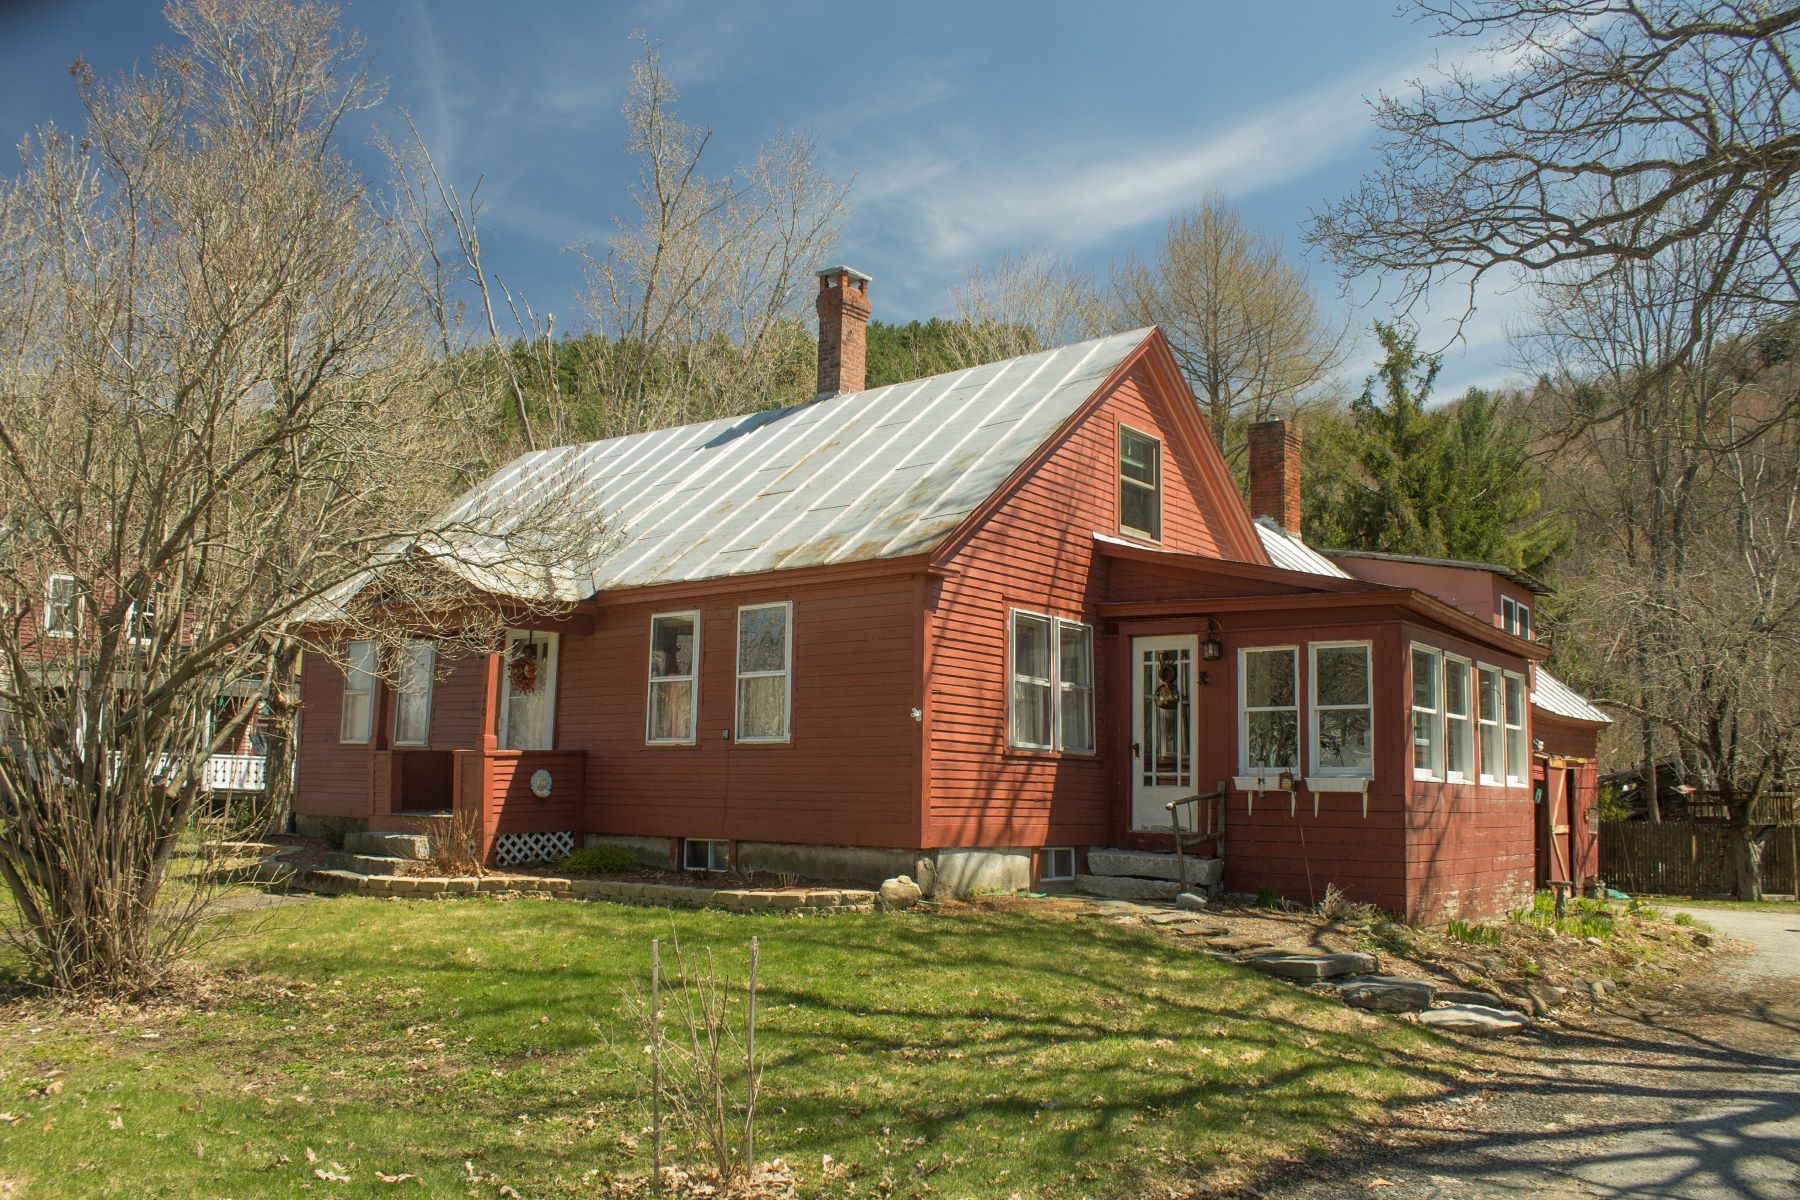 Single Family Homes for Sale at Three Bedroom Antique Cape in Chelsea 340 Vt Route 110 Chelsea, Vermont 05038 United States